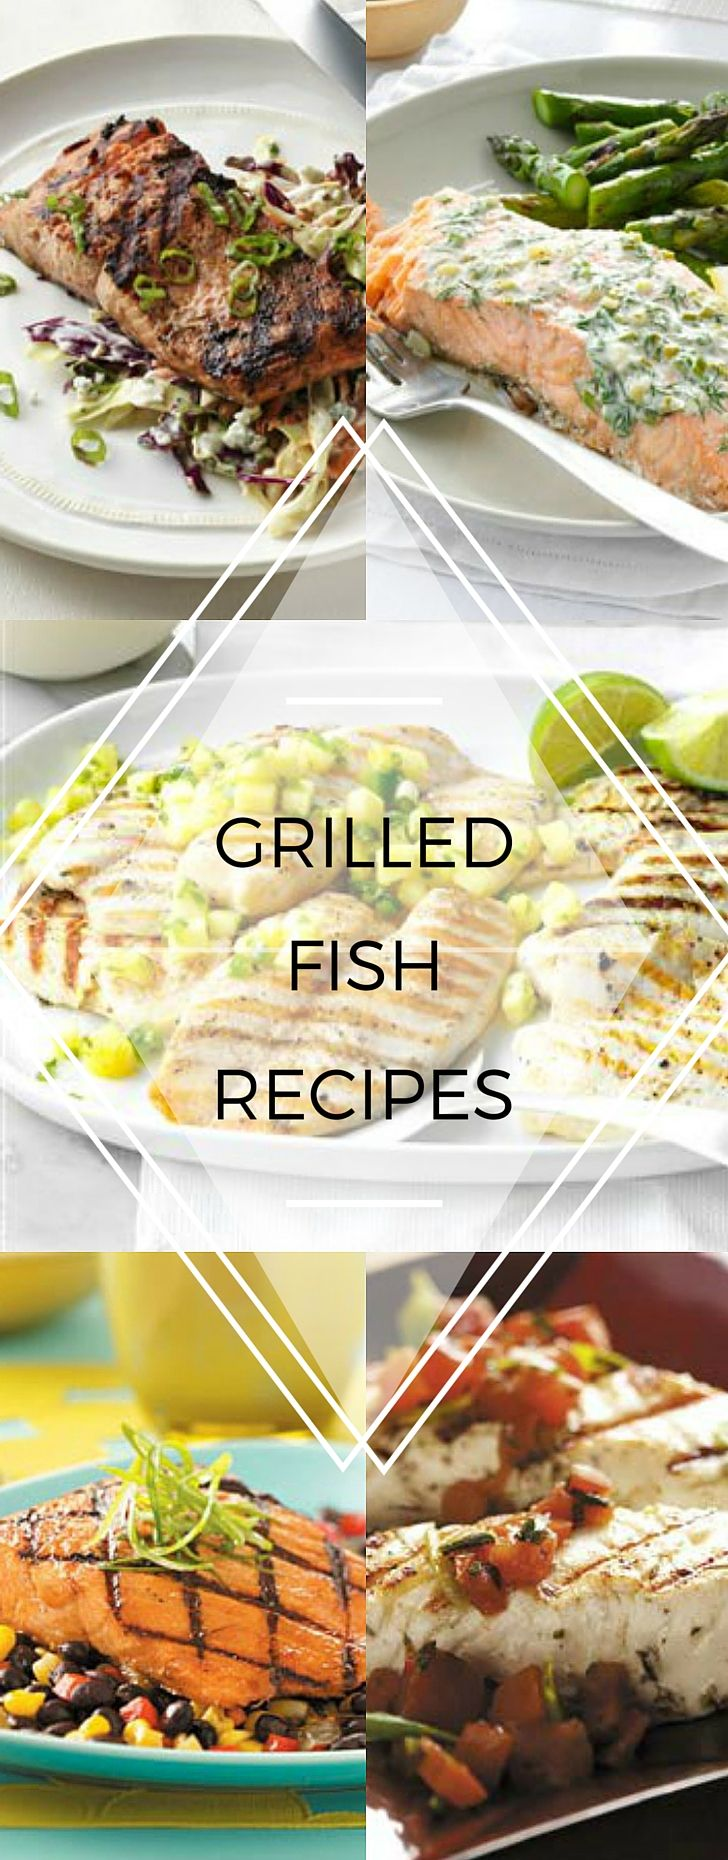 81 best images about Father's Day Recipes on Pinterest ...